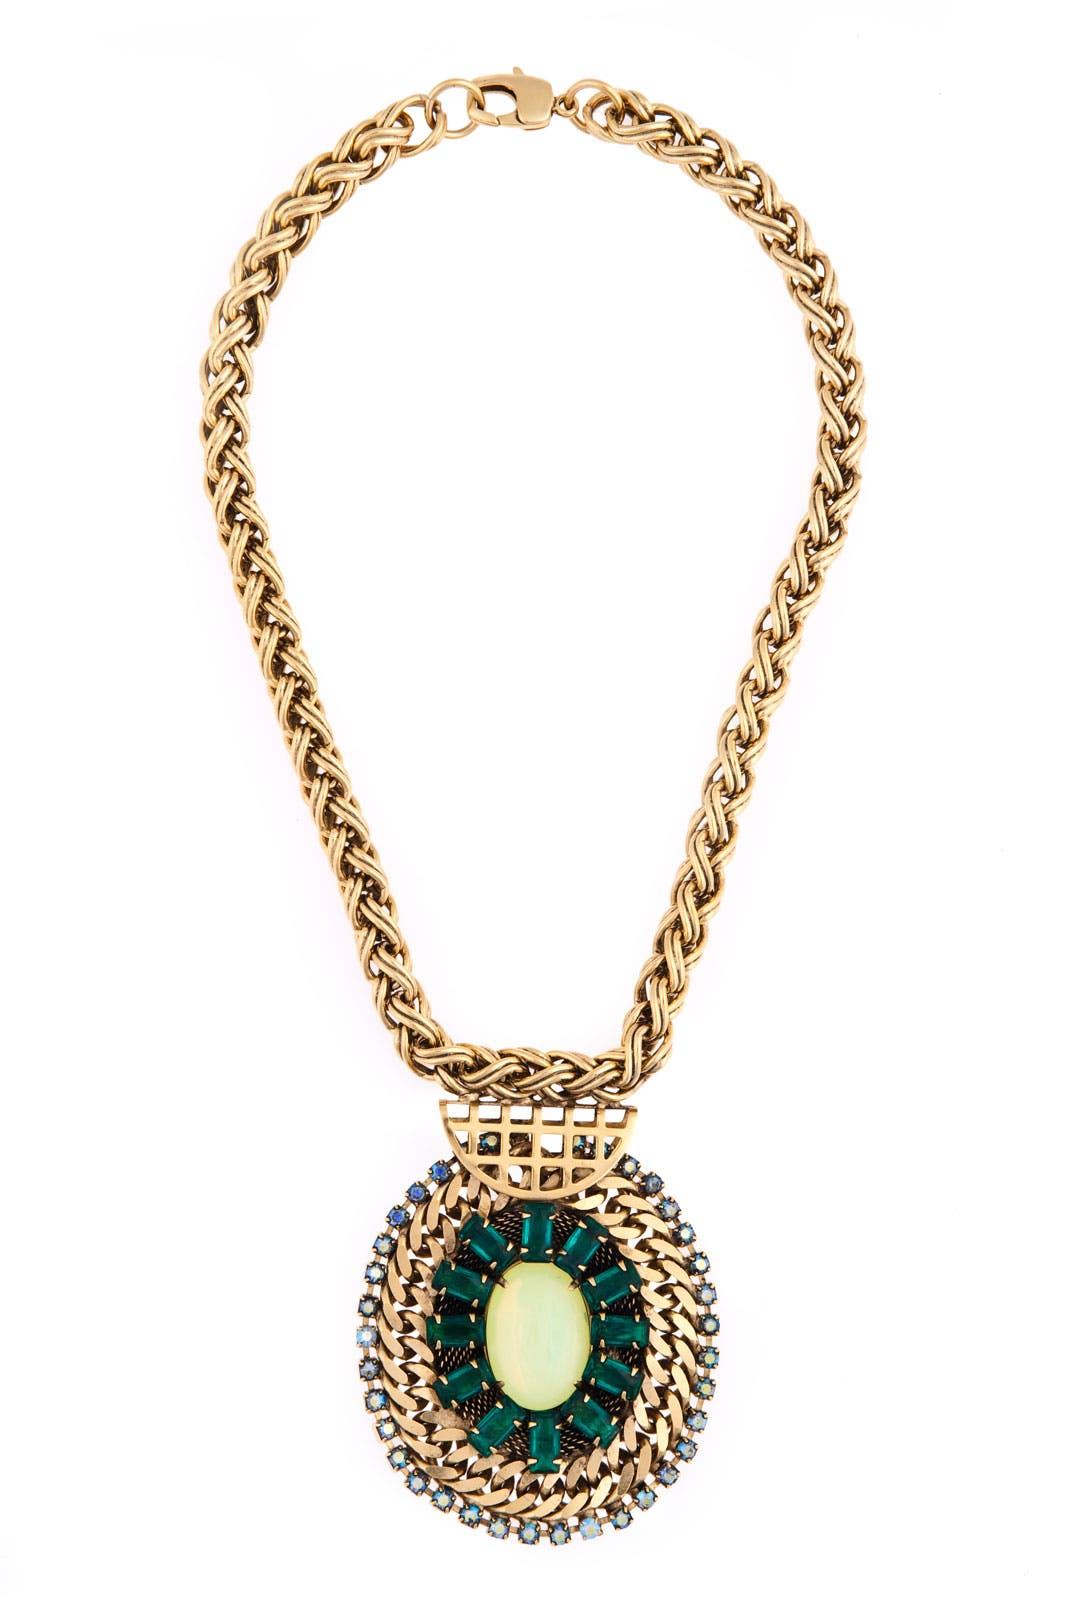 Indus Necklace by Nicole Romano